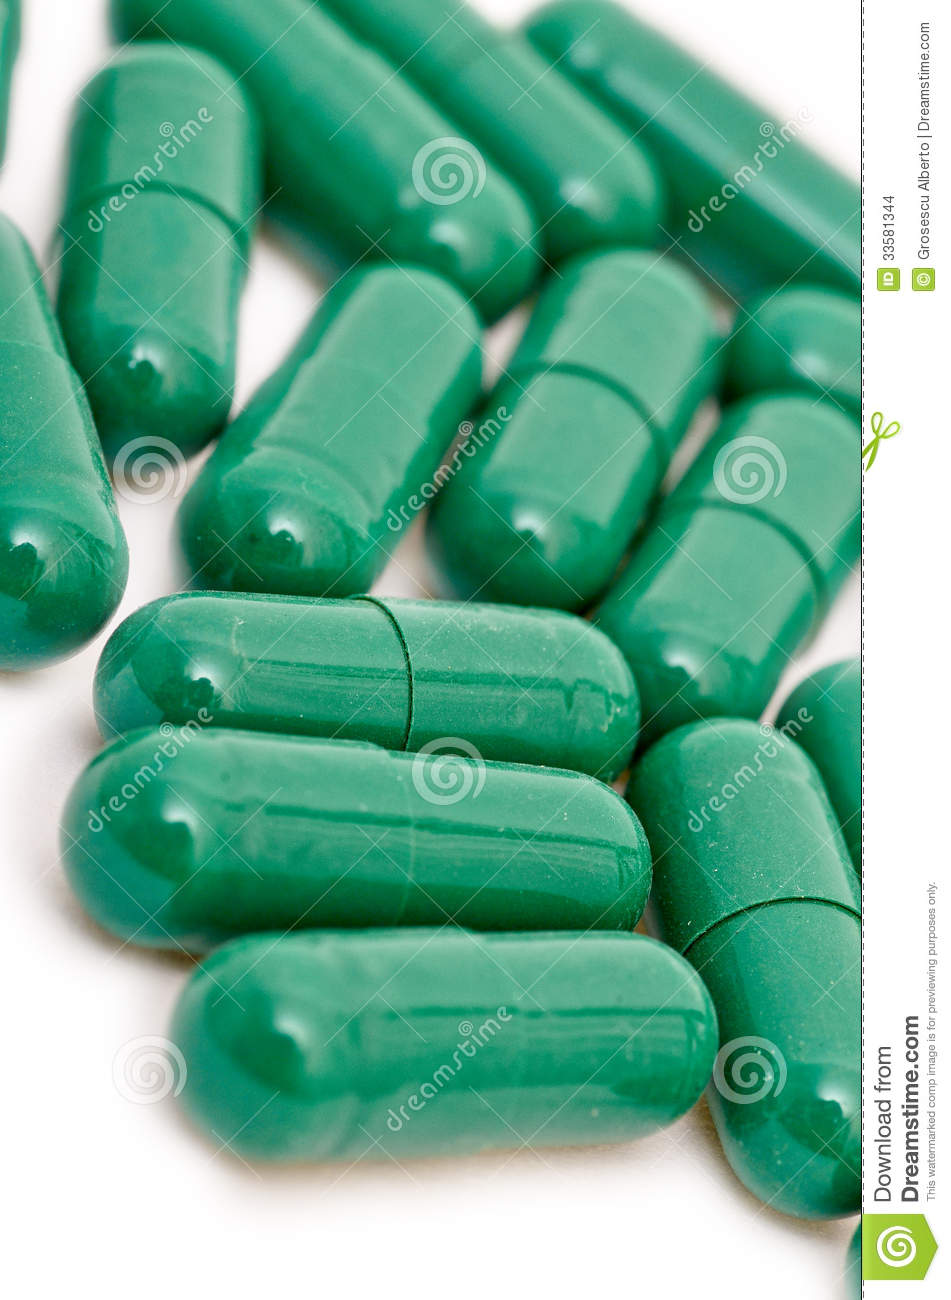 Can you buy ivermectin for humans